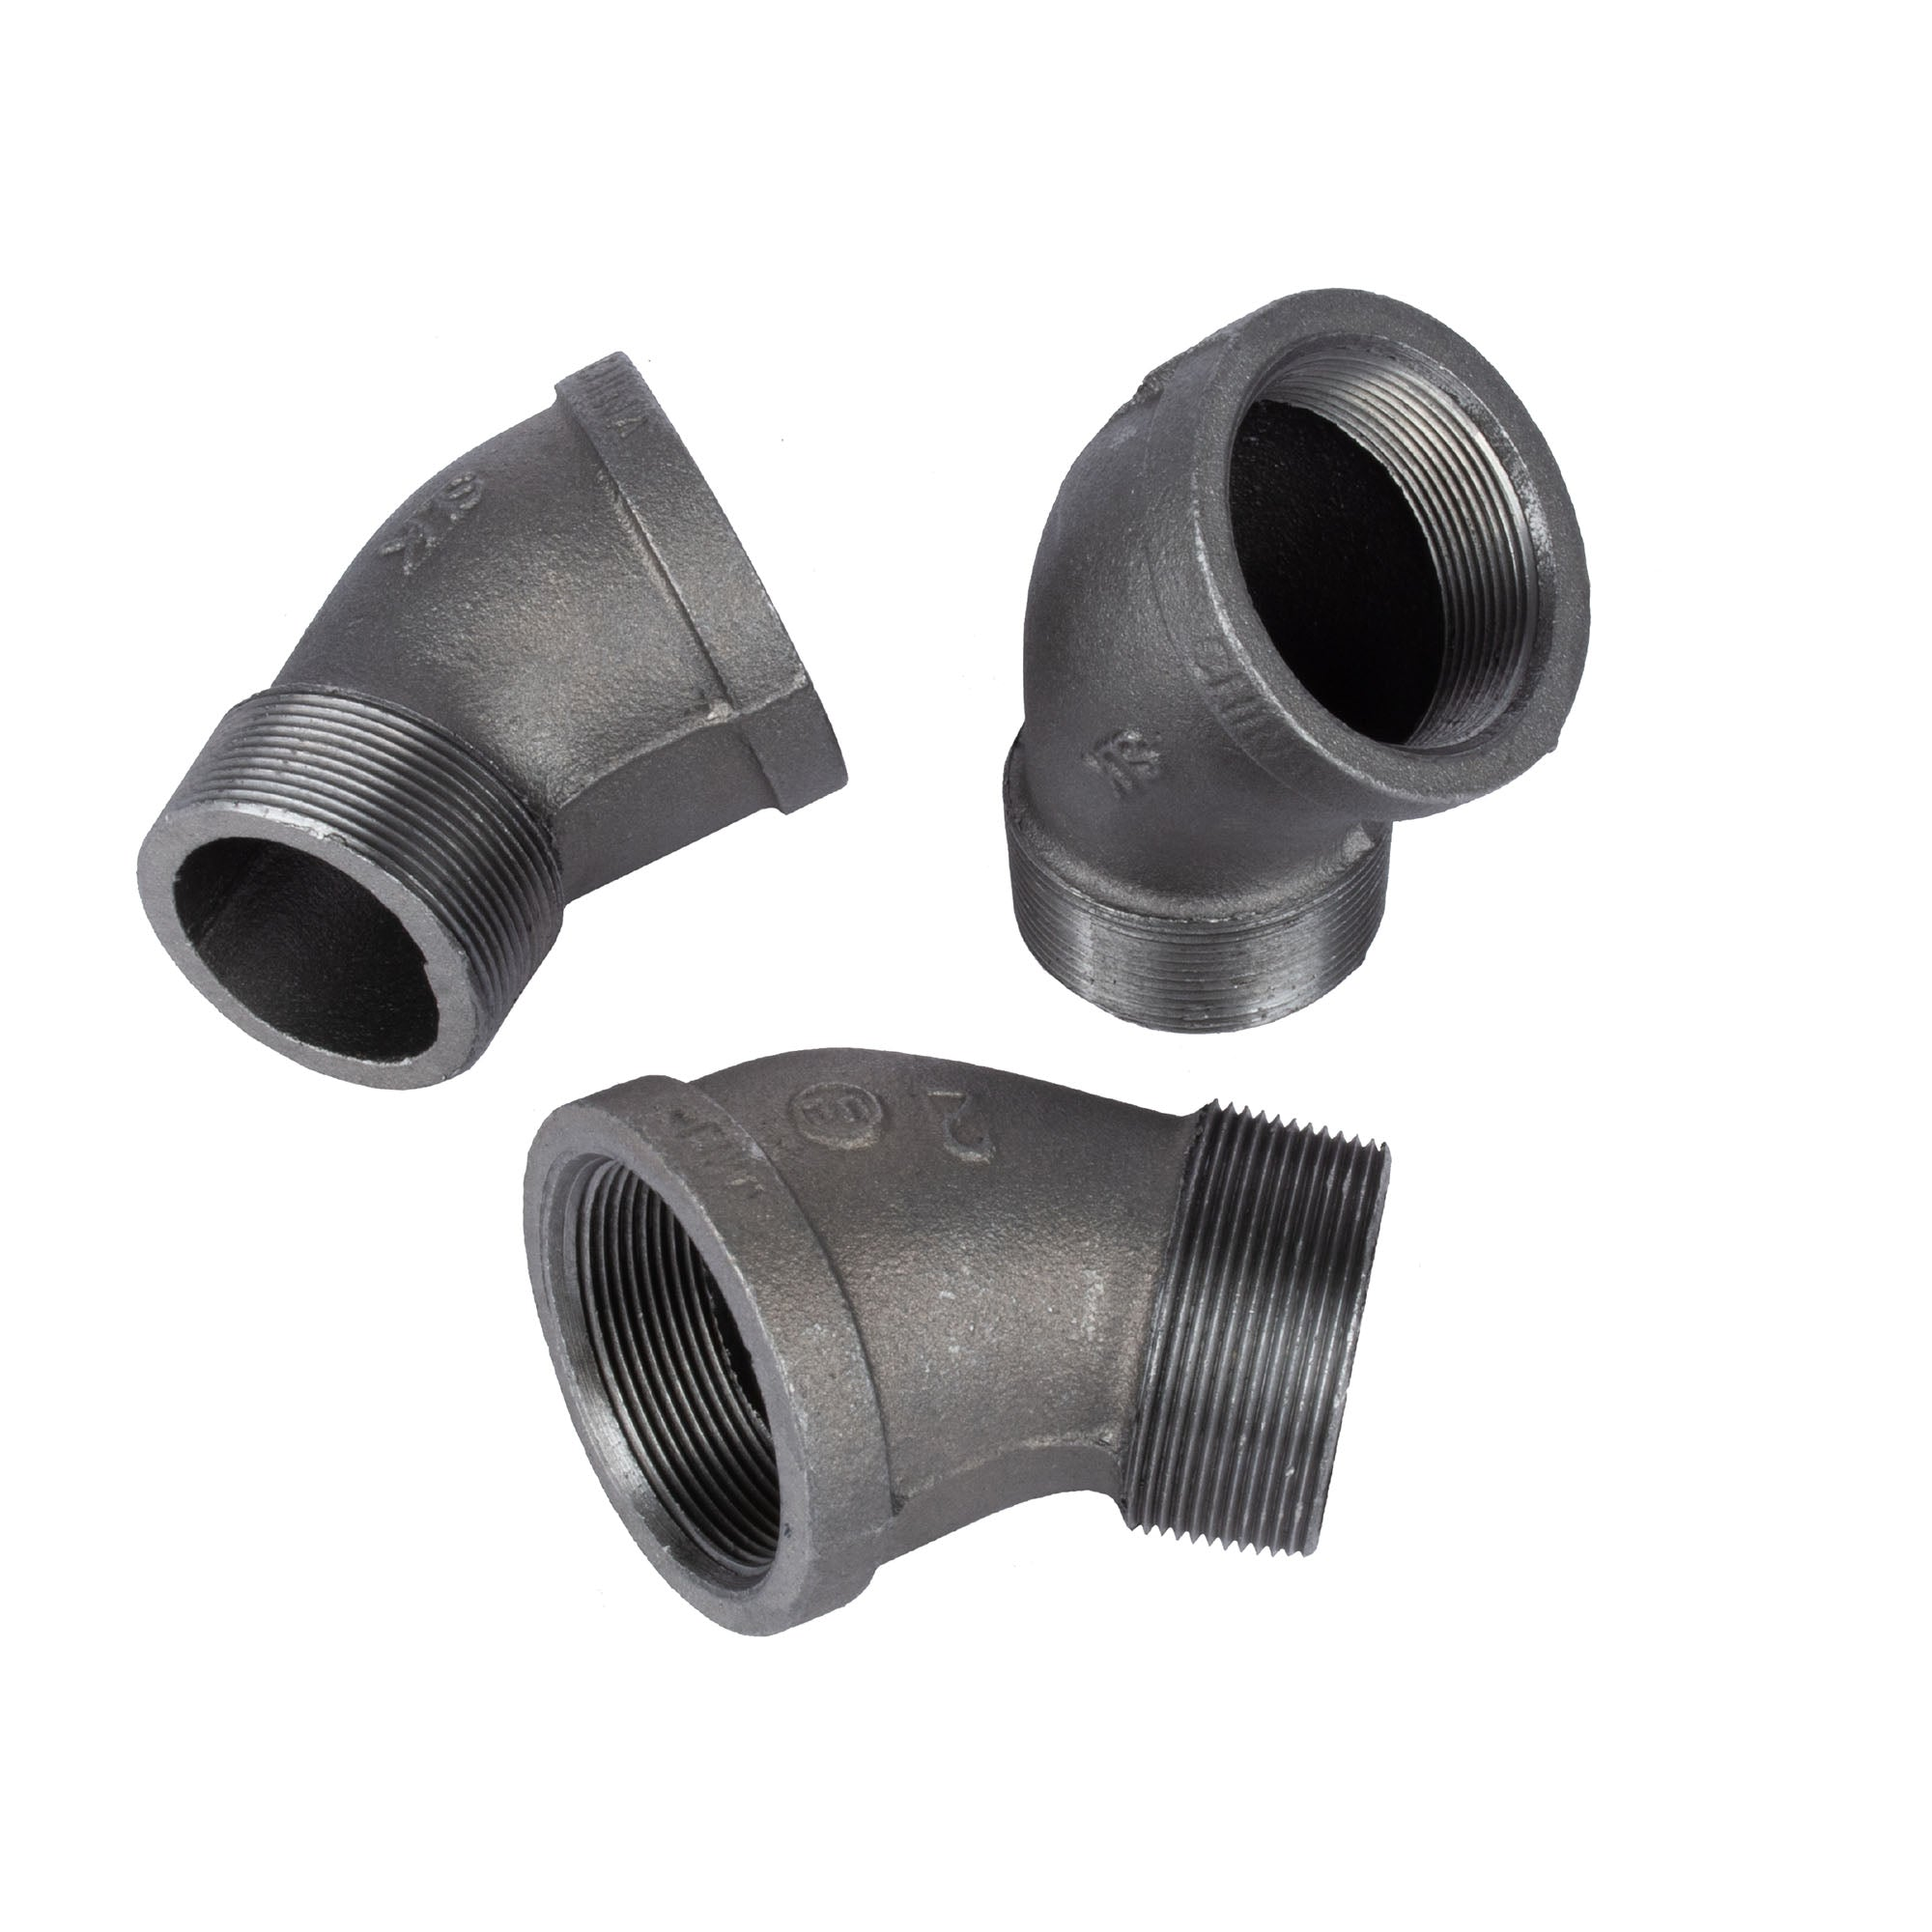 2 In 45 Street Elbow - Pipe Decor